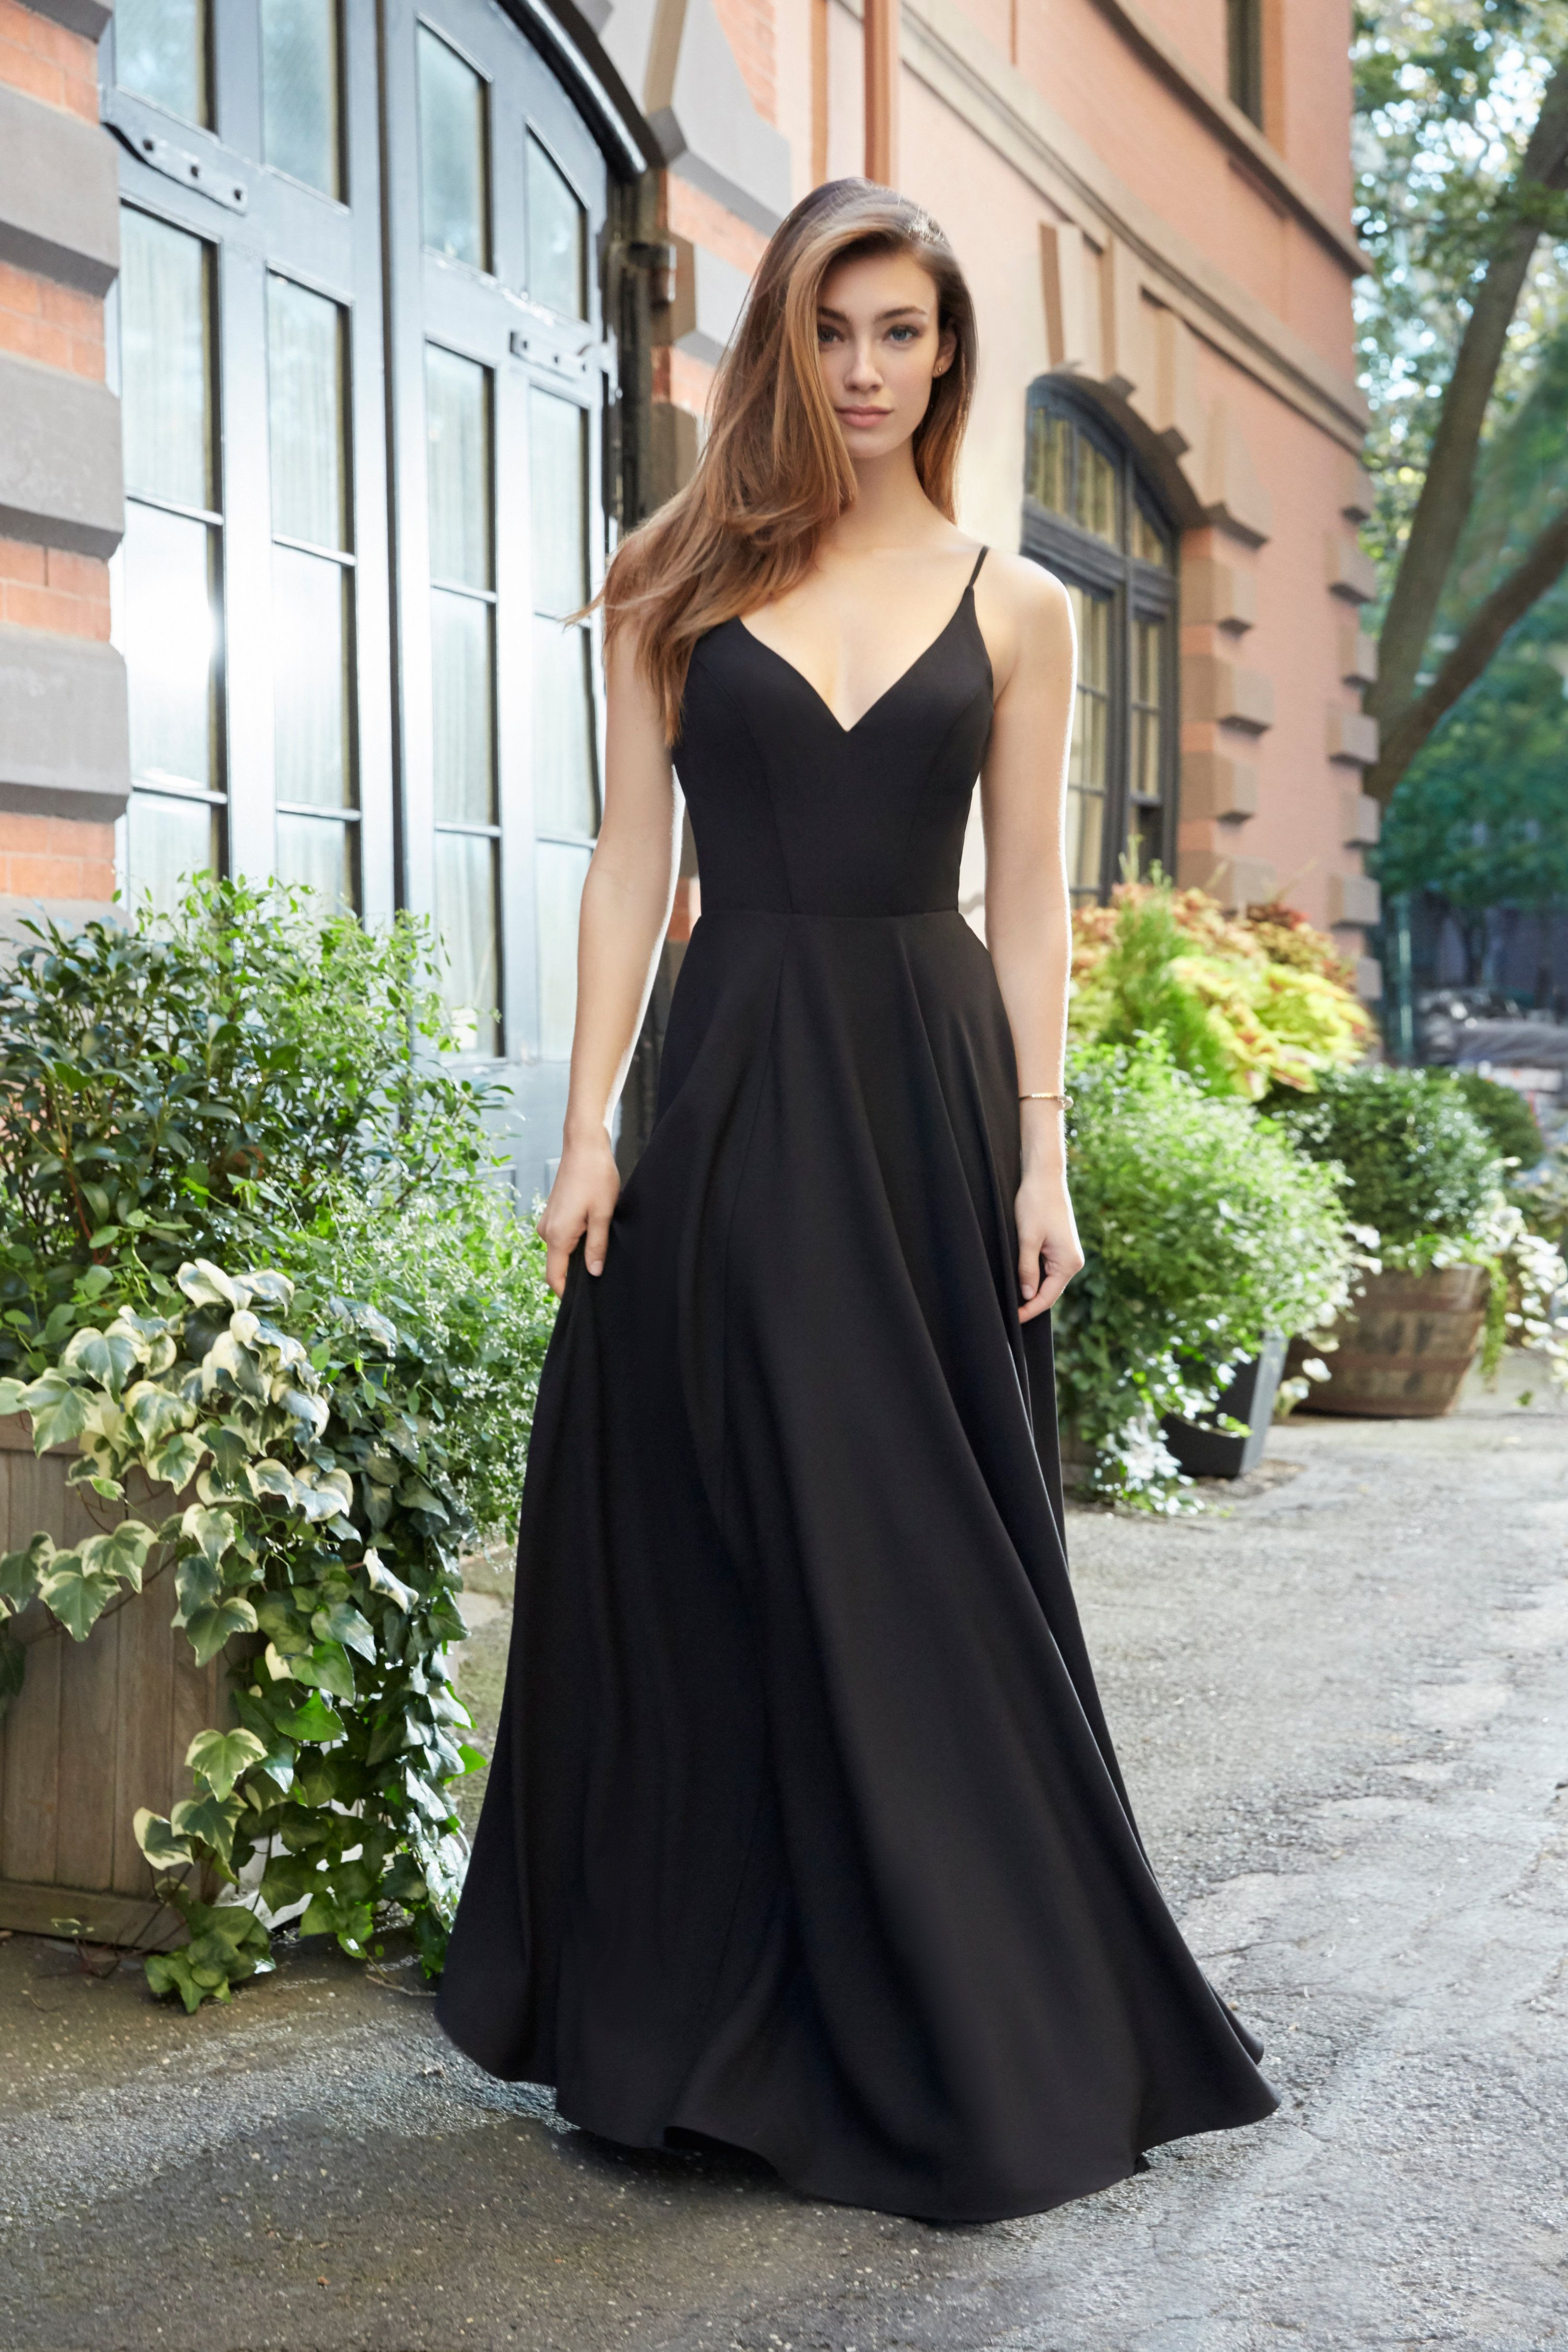 f8dfcc19a381b Style 5815 | Black crepe-line bridesmaid gown, V-neckline, natural waist,  circular skirt with pockets